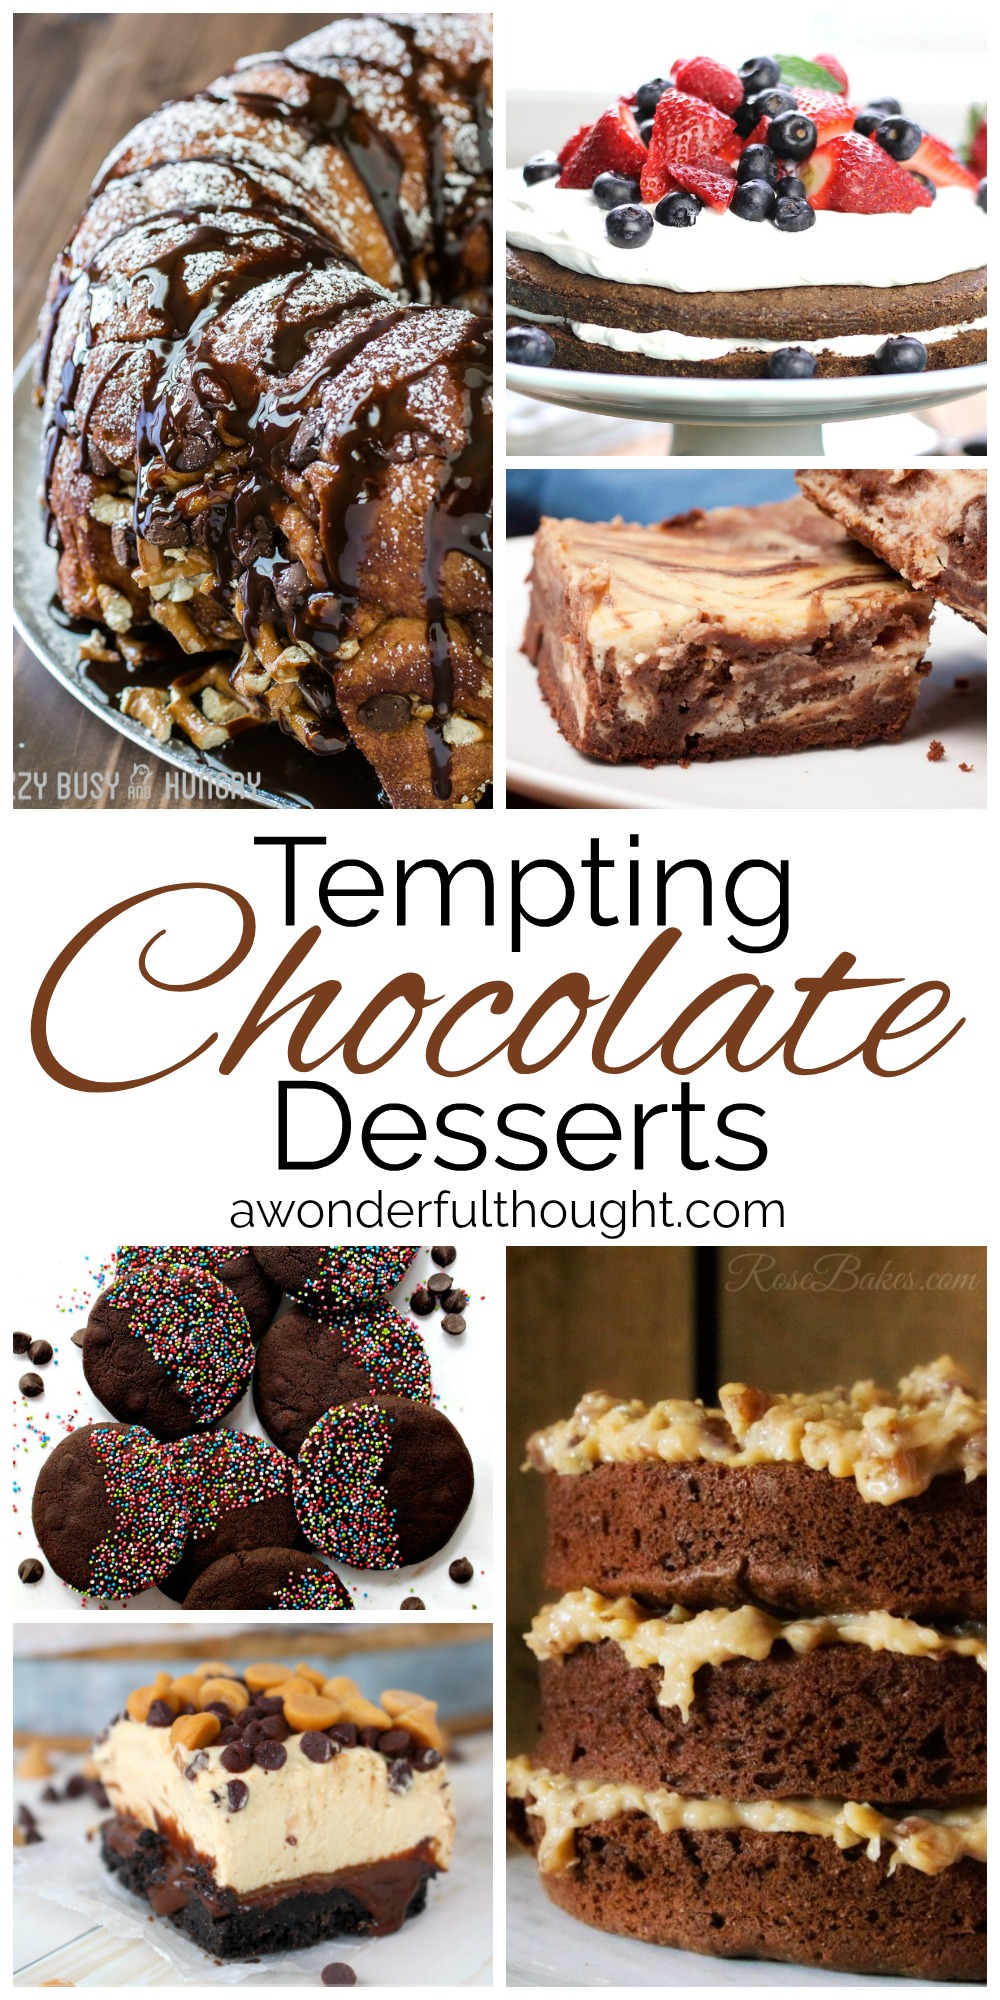 Tempting Chocolate Desserts | awonderfulthought.com